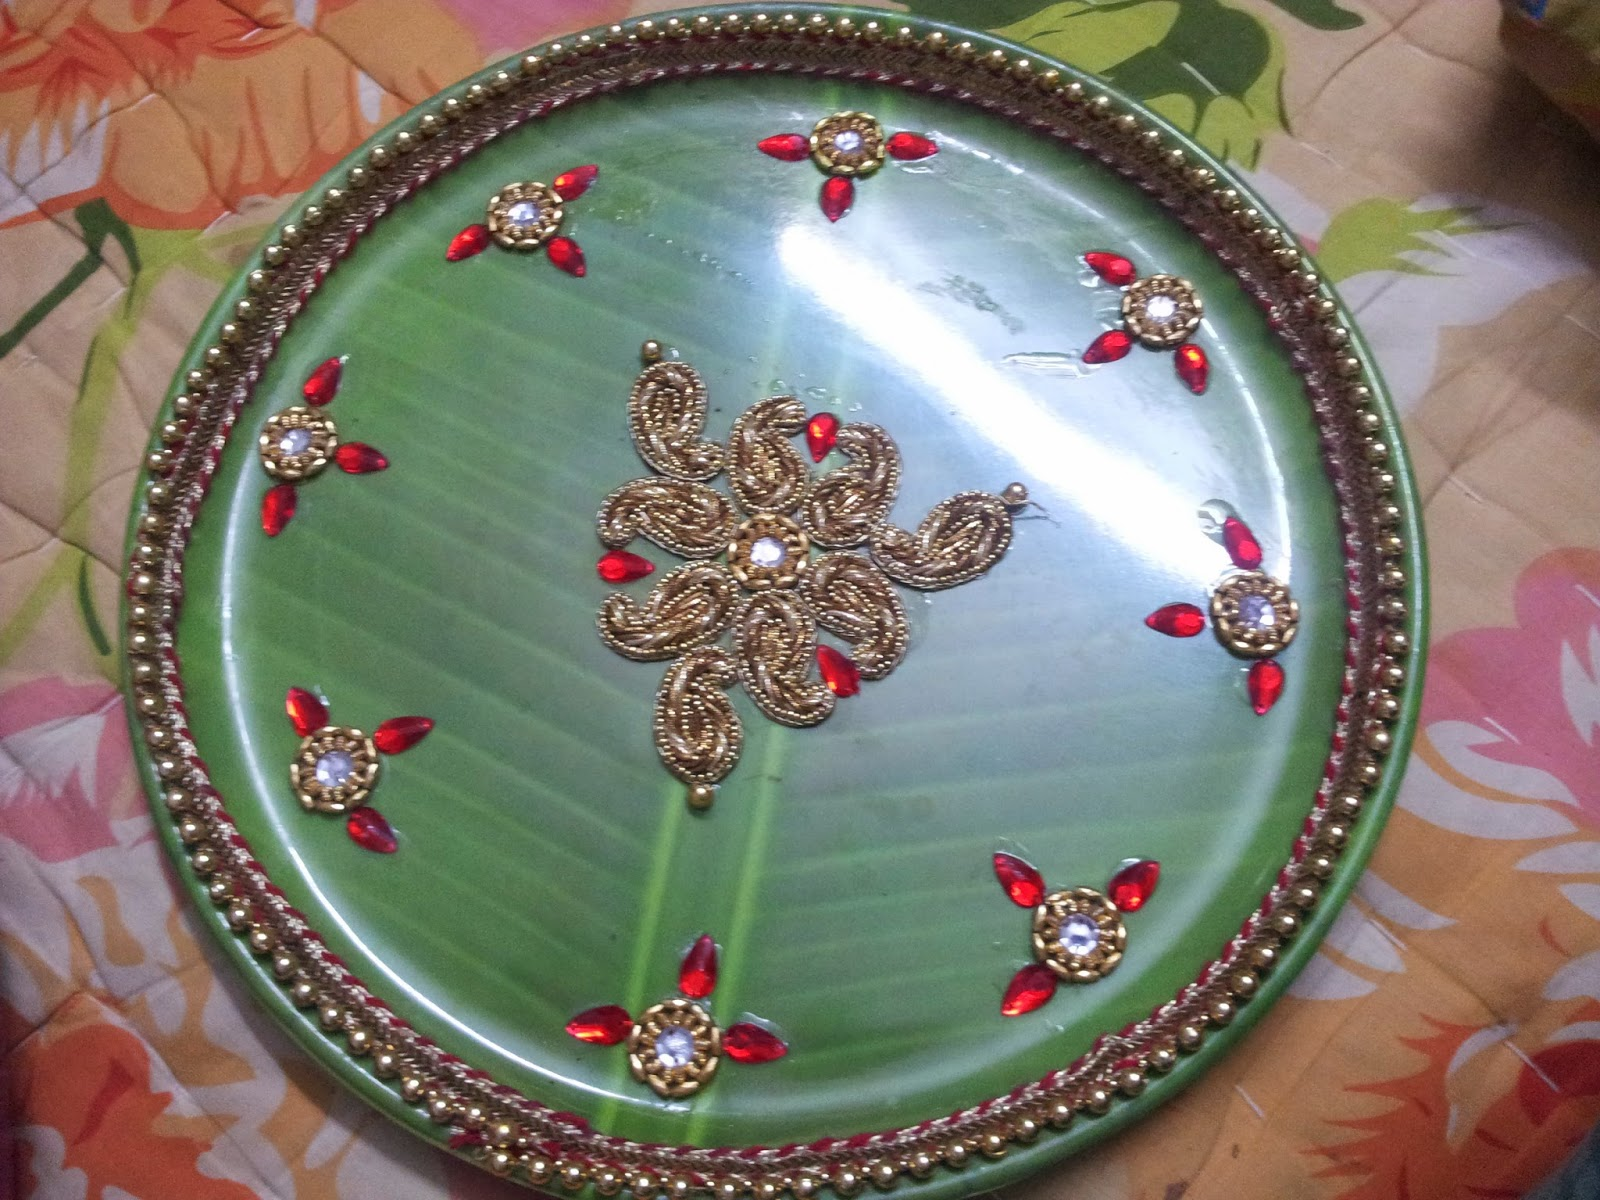 ... nephewu0027s upanayanam and I made this designer tray. Got a leaf designed green plastic plate which is light weight I decorated it with laces and patches. & Swarnaa Creations: Designer plate for my Nephewu0027s Upanayanam